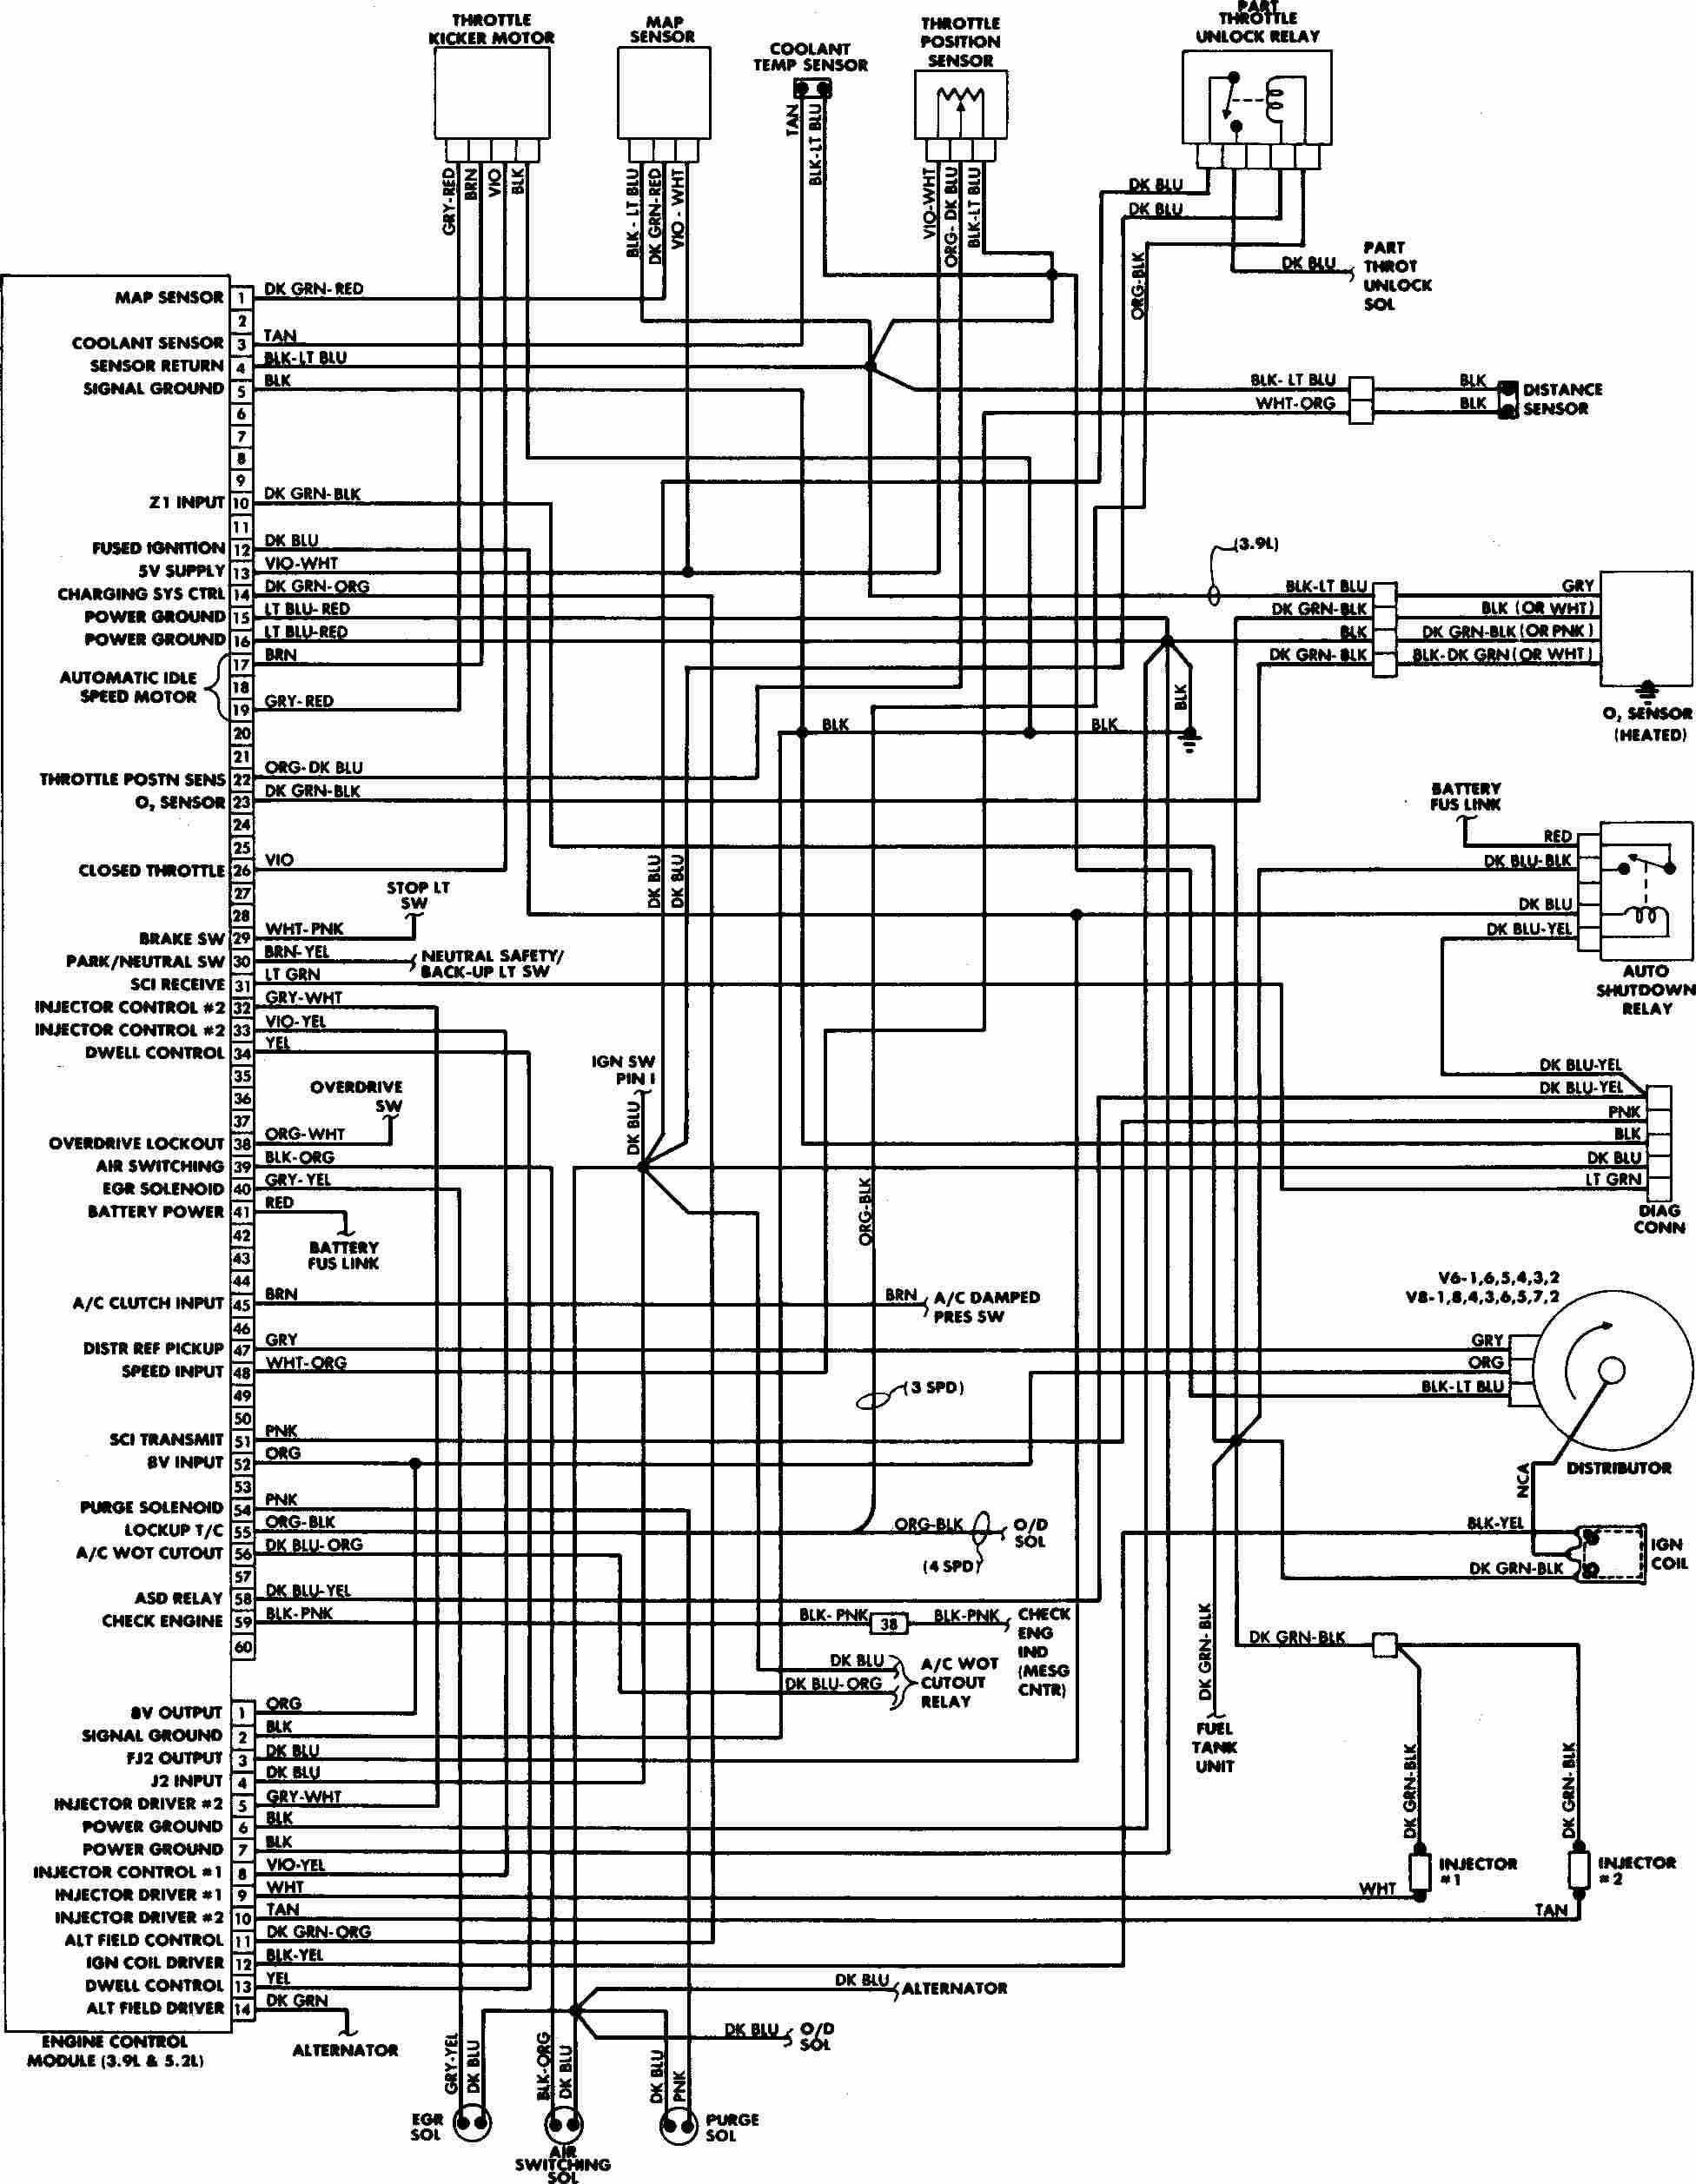 [SCHEMATICS_48ZD]  609A Dodge Neon Wiring Harness Diagram | Wiring Library | Dodge Neon Wiring Diagram Free |  | Wiring Library